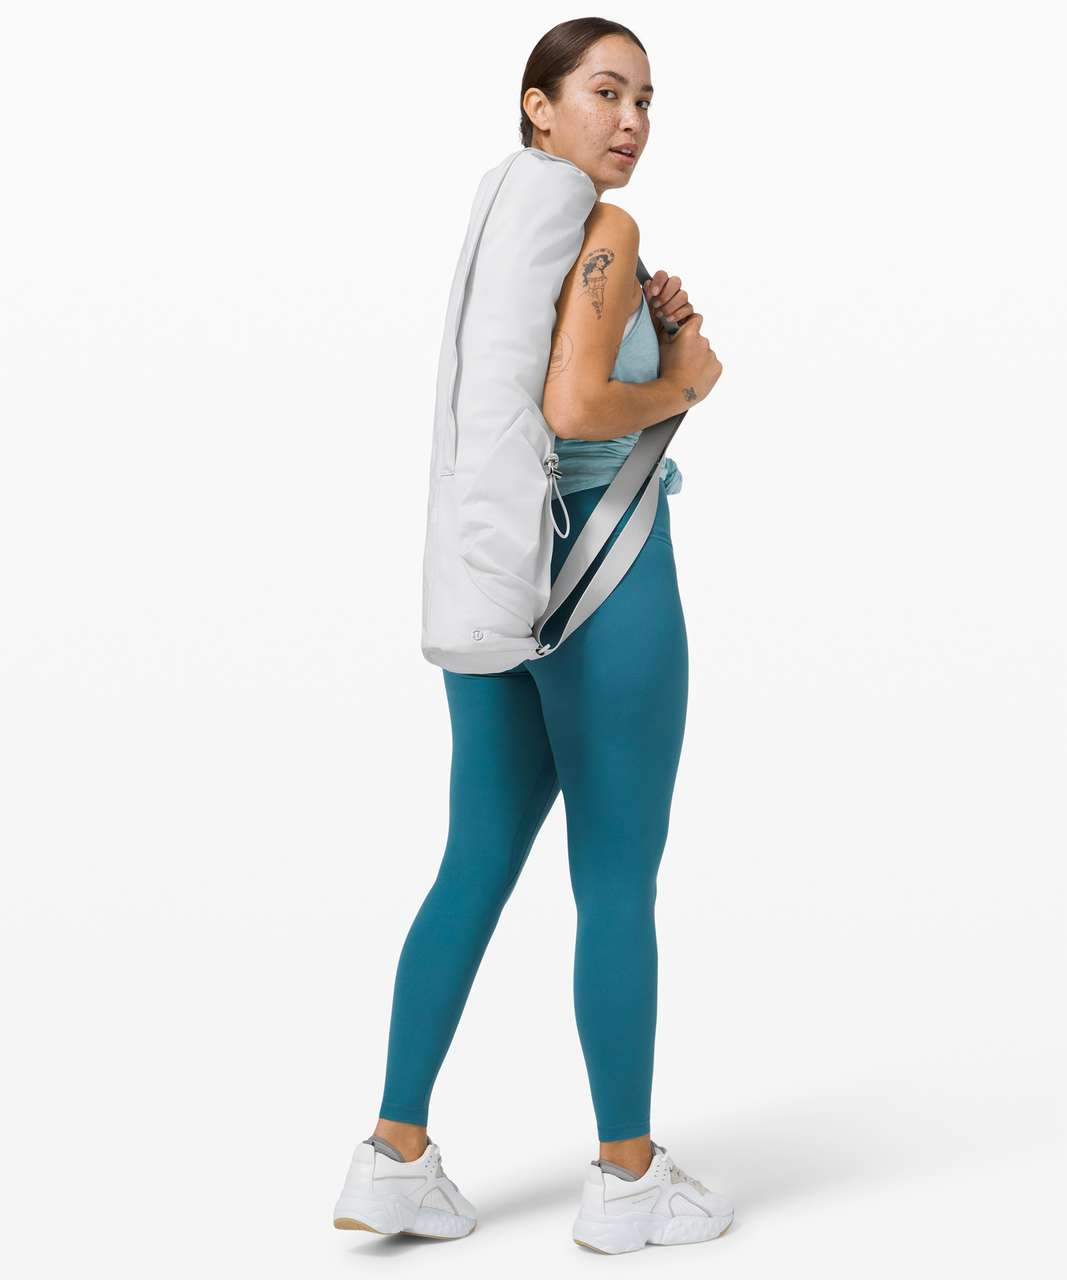 Lululemon The Yoga Mat Bag *16L - Vapor